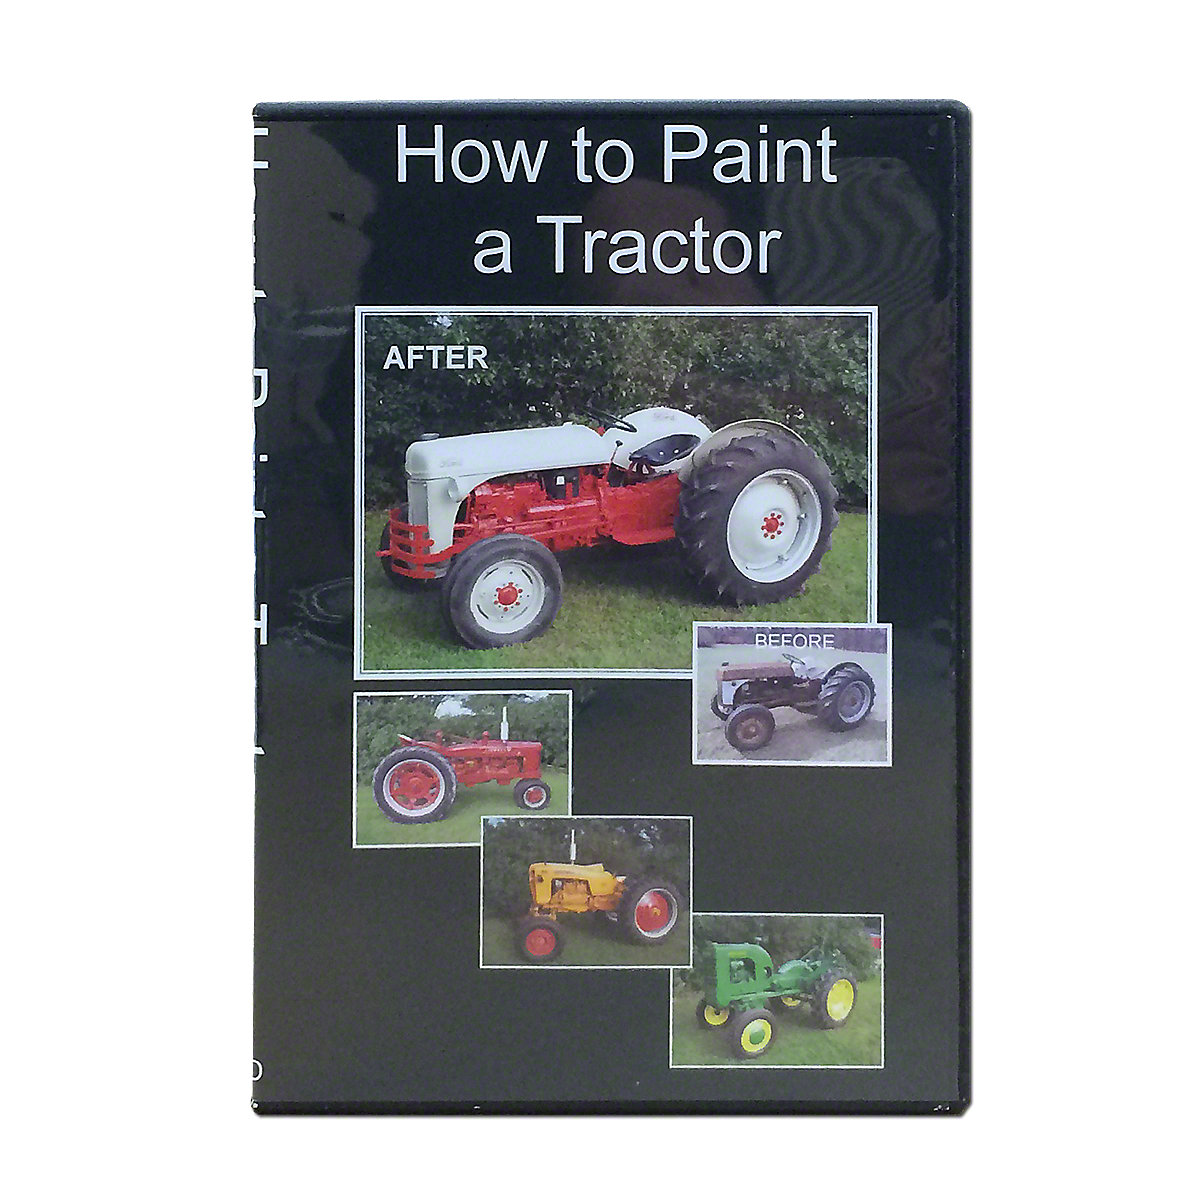 Jd201 I T Shop Service Manual 420 Ford Tractor Electrical Wiring Diagram How To Paint A Video Dvd